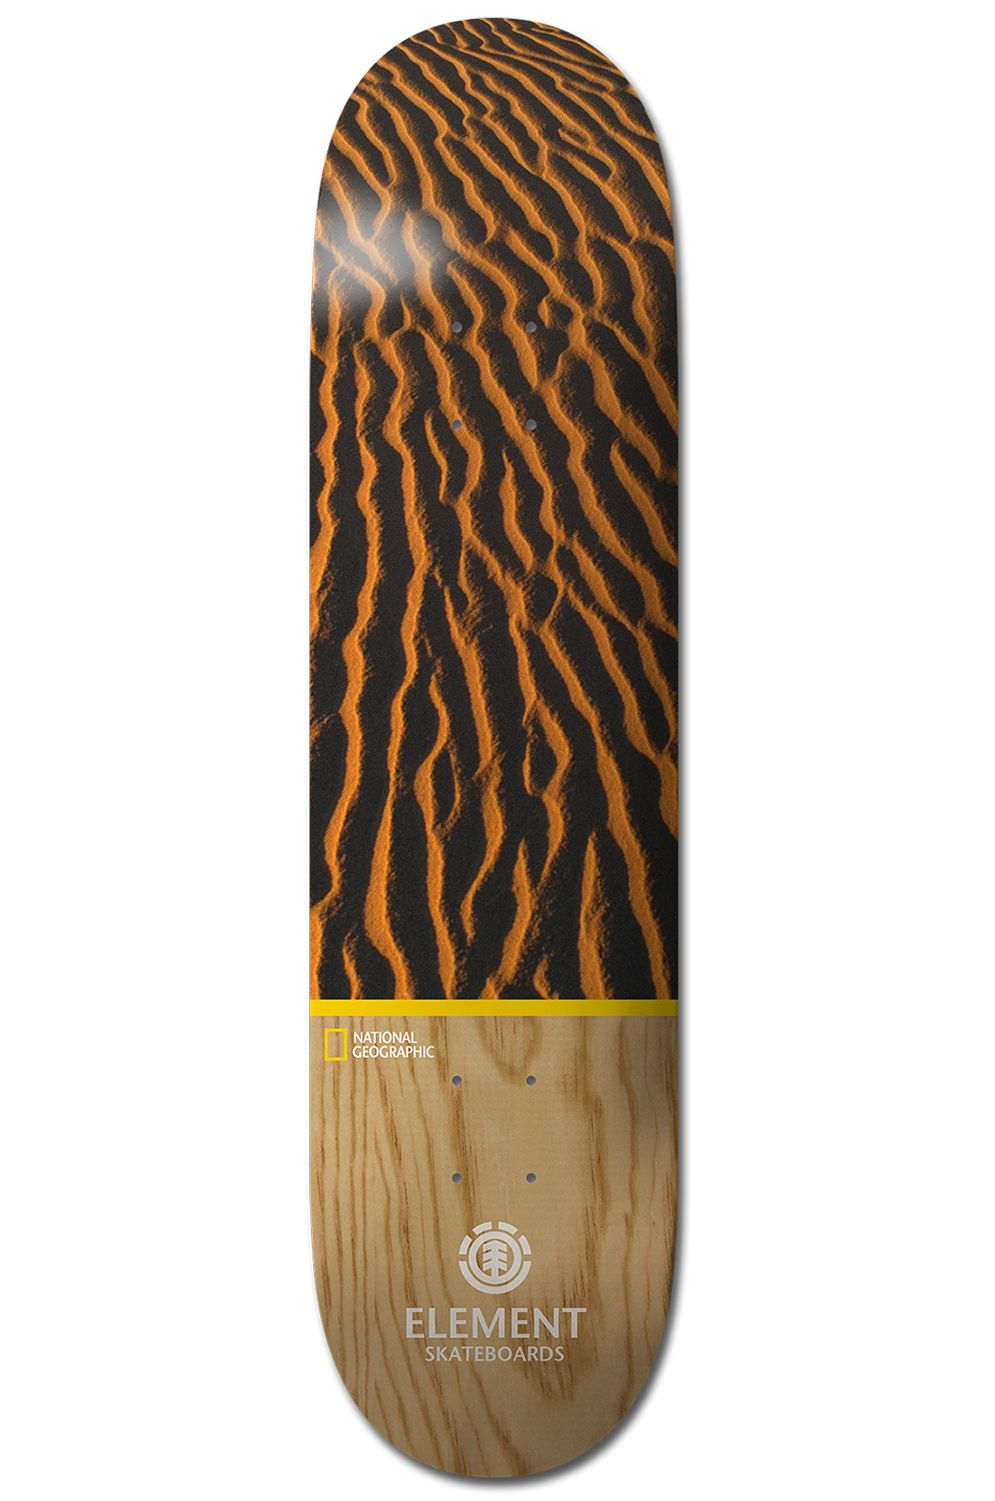 Element Skate Board NAT GEO EARTH NATIONAL GEOGRAPHIC Assorted